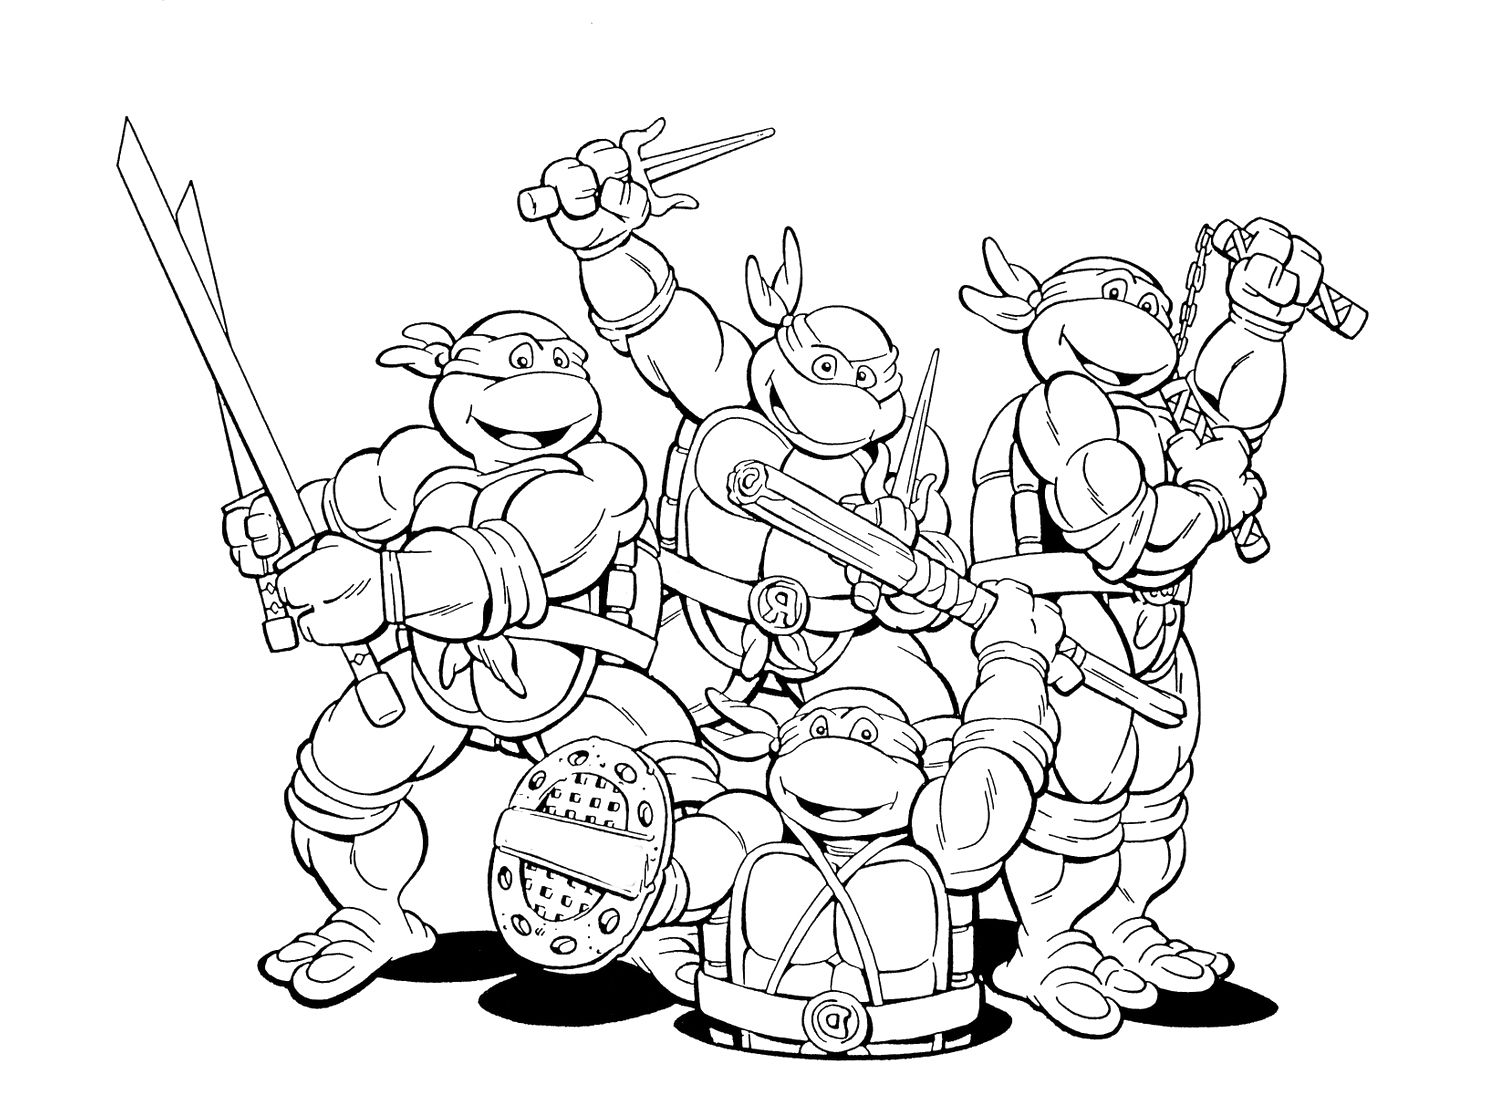 printable ninja turtle coloring pages teenage mutant ninja turtle coloring picture google turtle ninja coloring pages printable